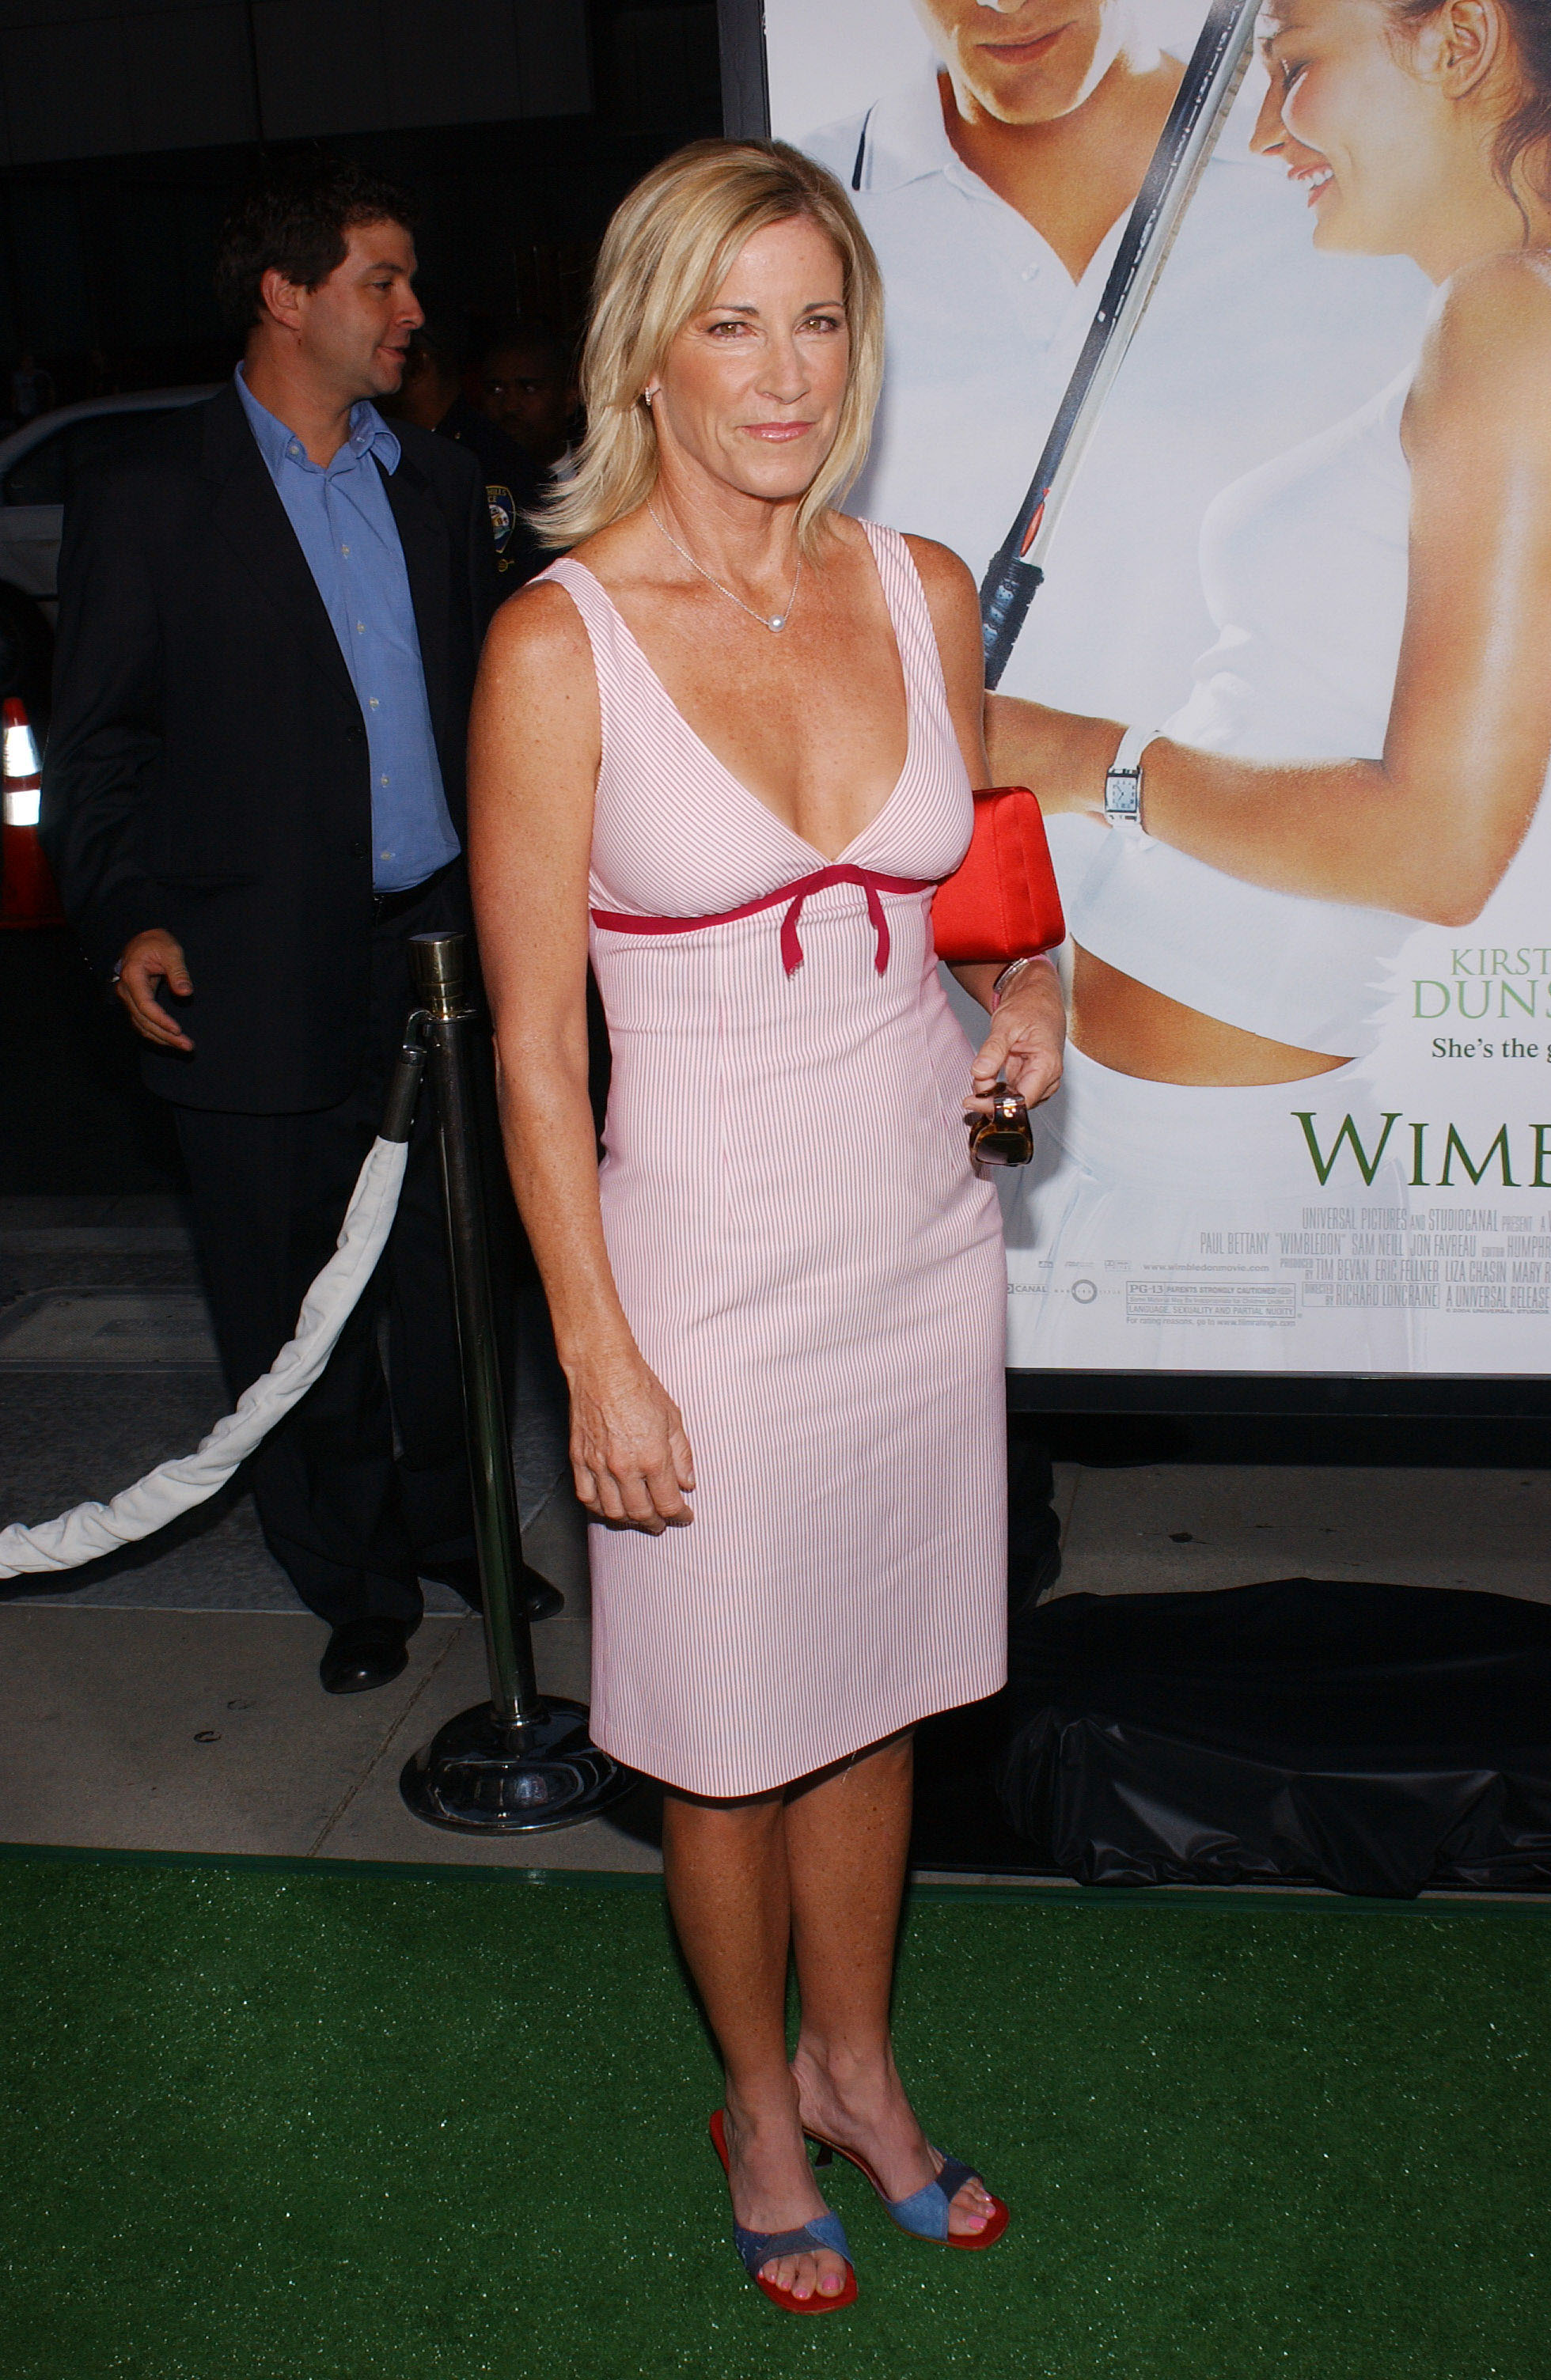 Chris Evert Chris Evert Tennis Pinterest